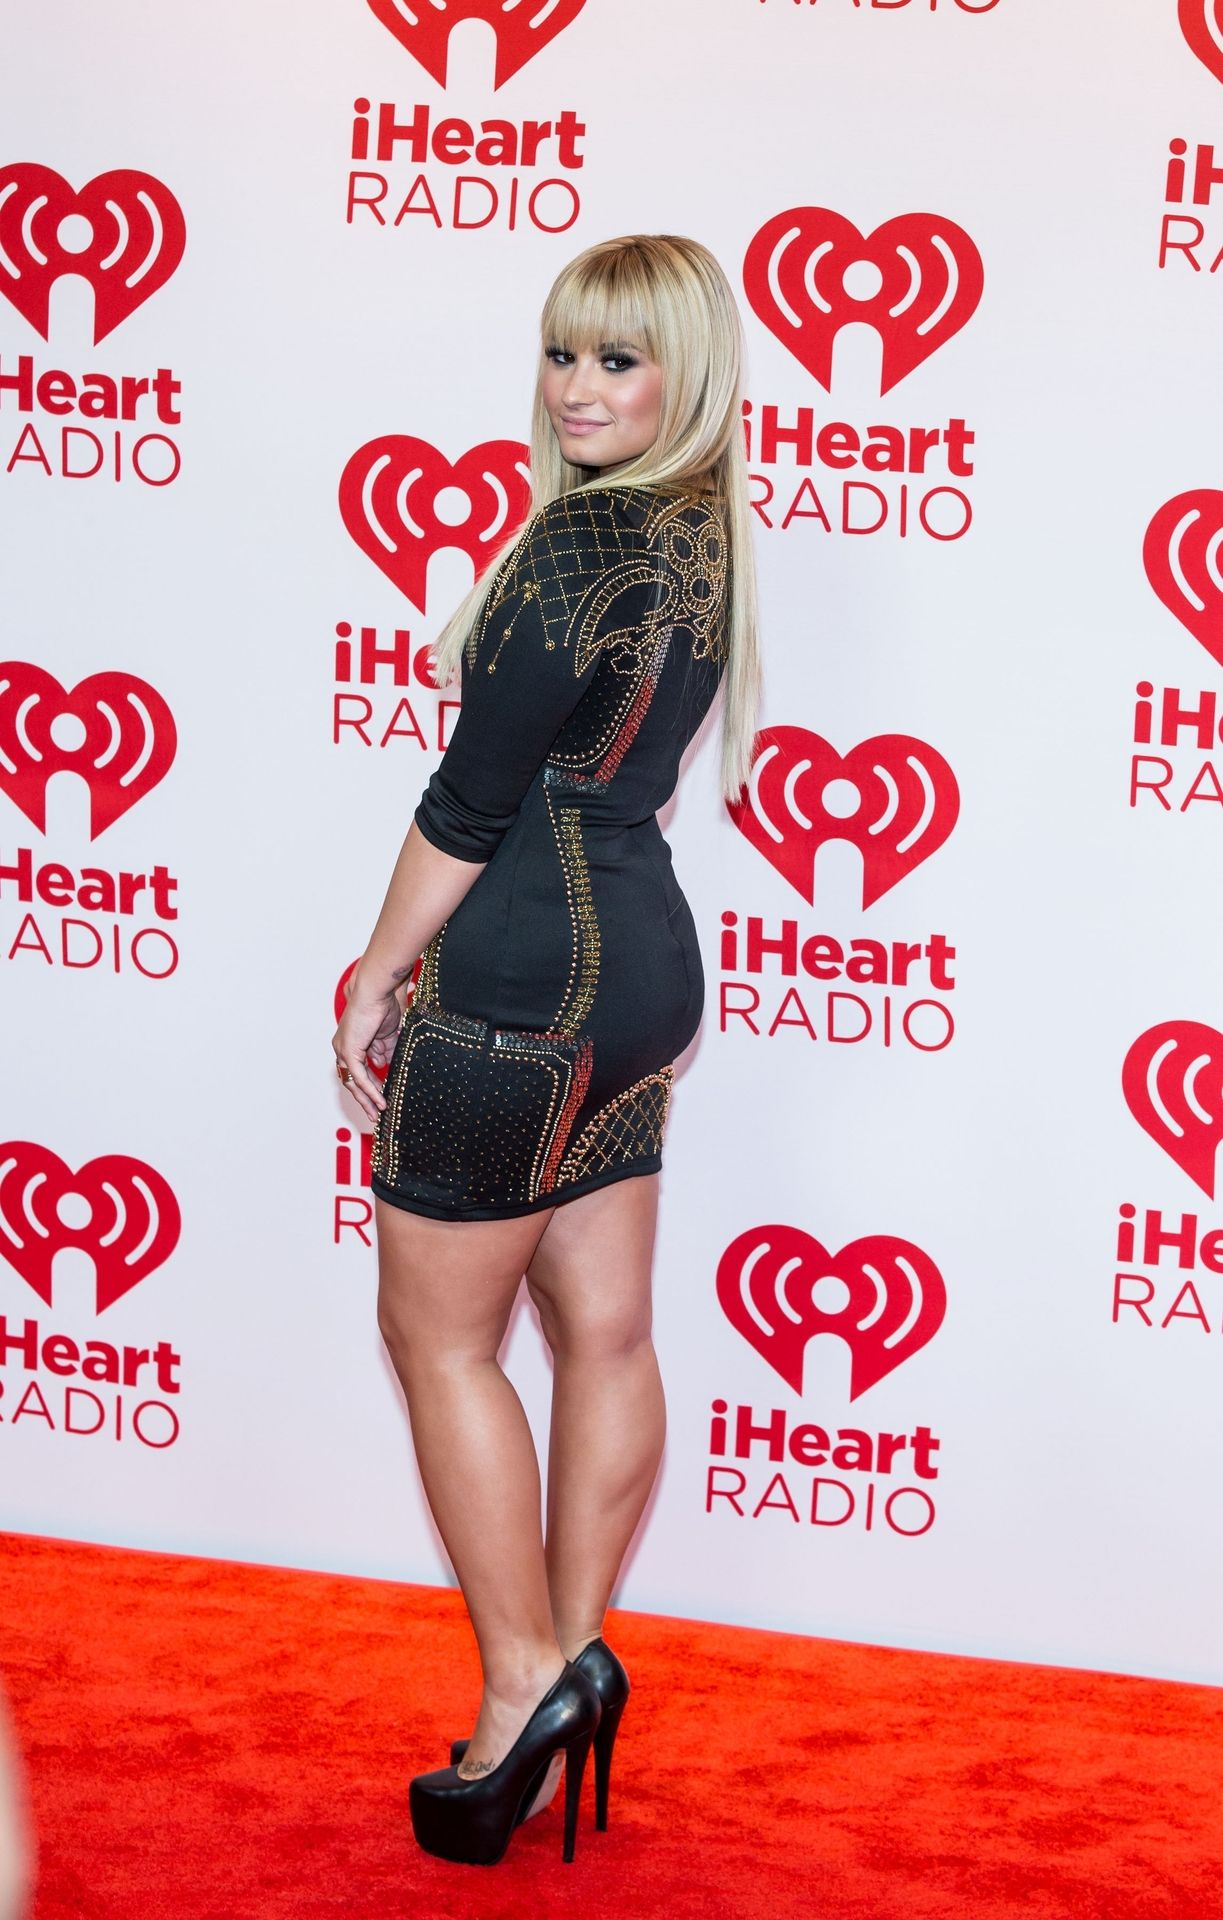 This Her Demi Mini Looking Lovato Legs In And Beautiful Awesome N0Oym8vnw